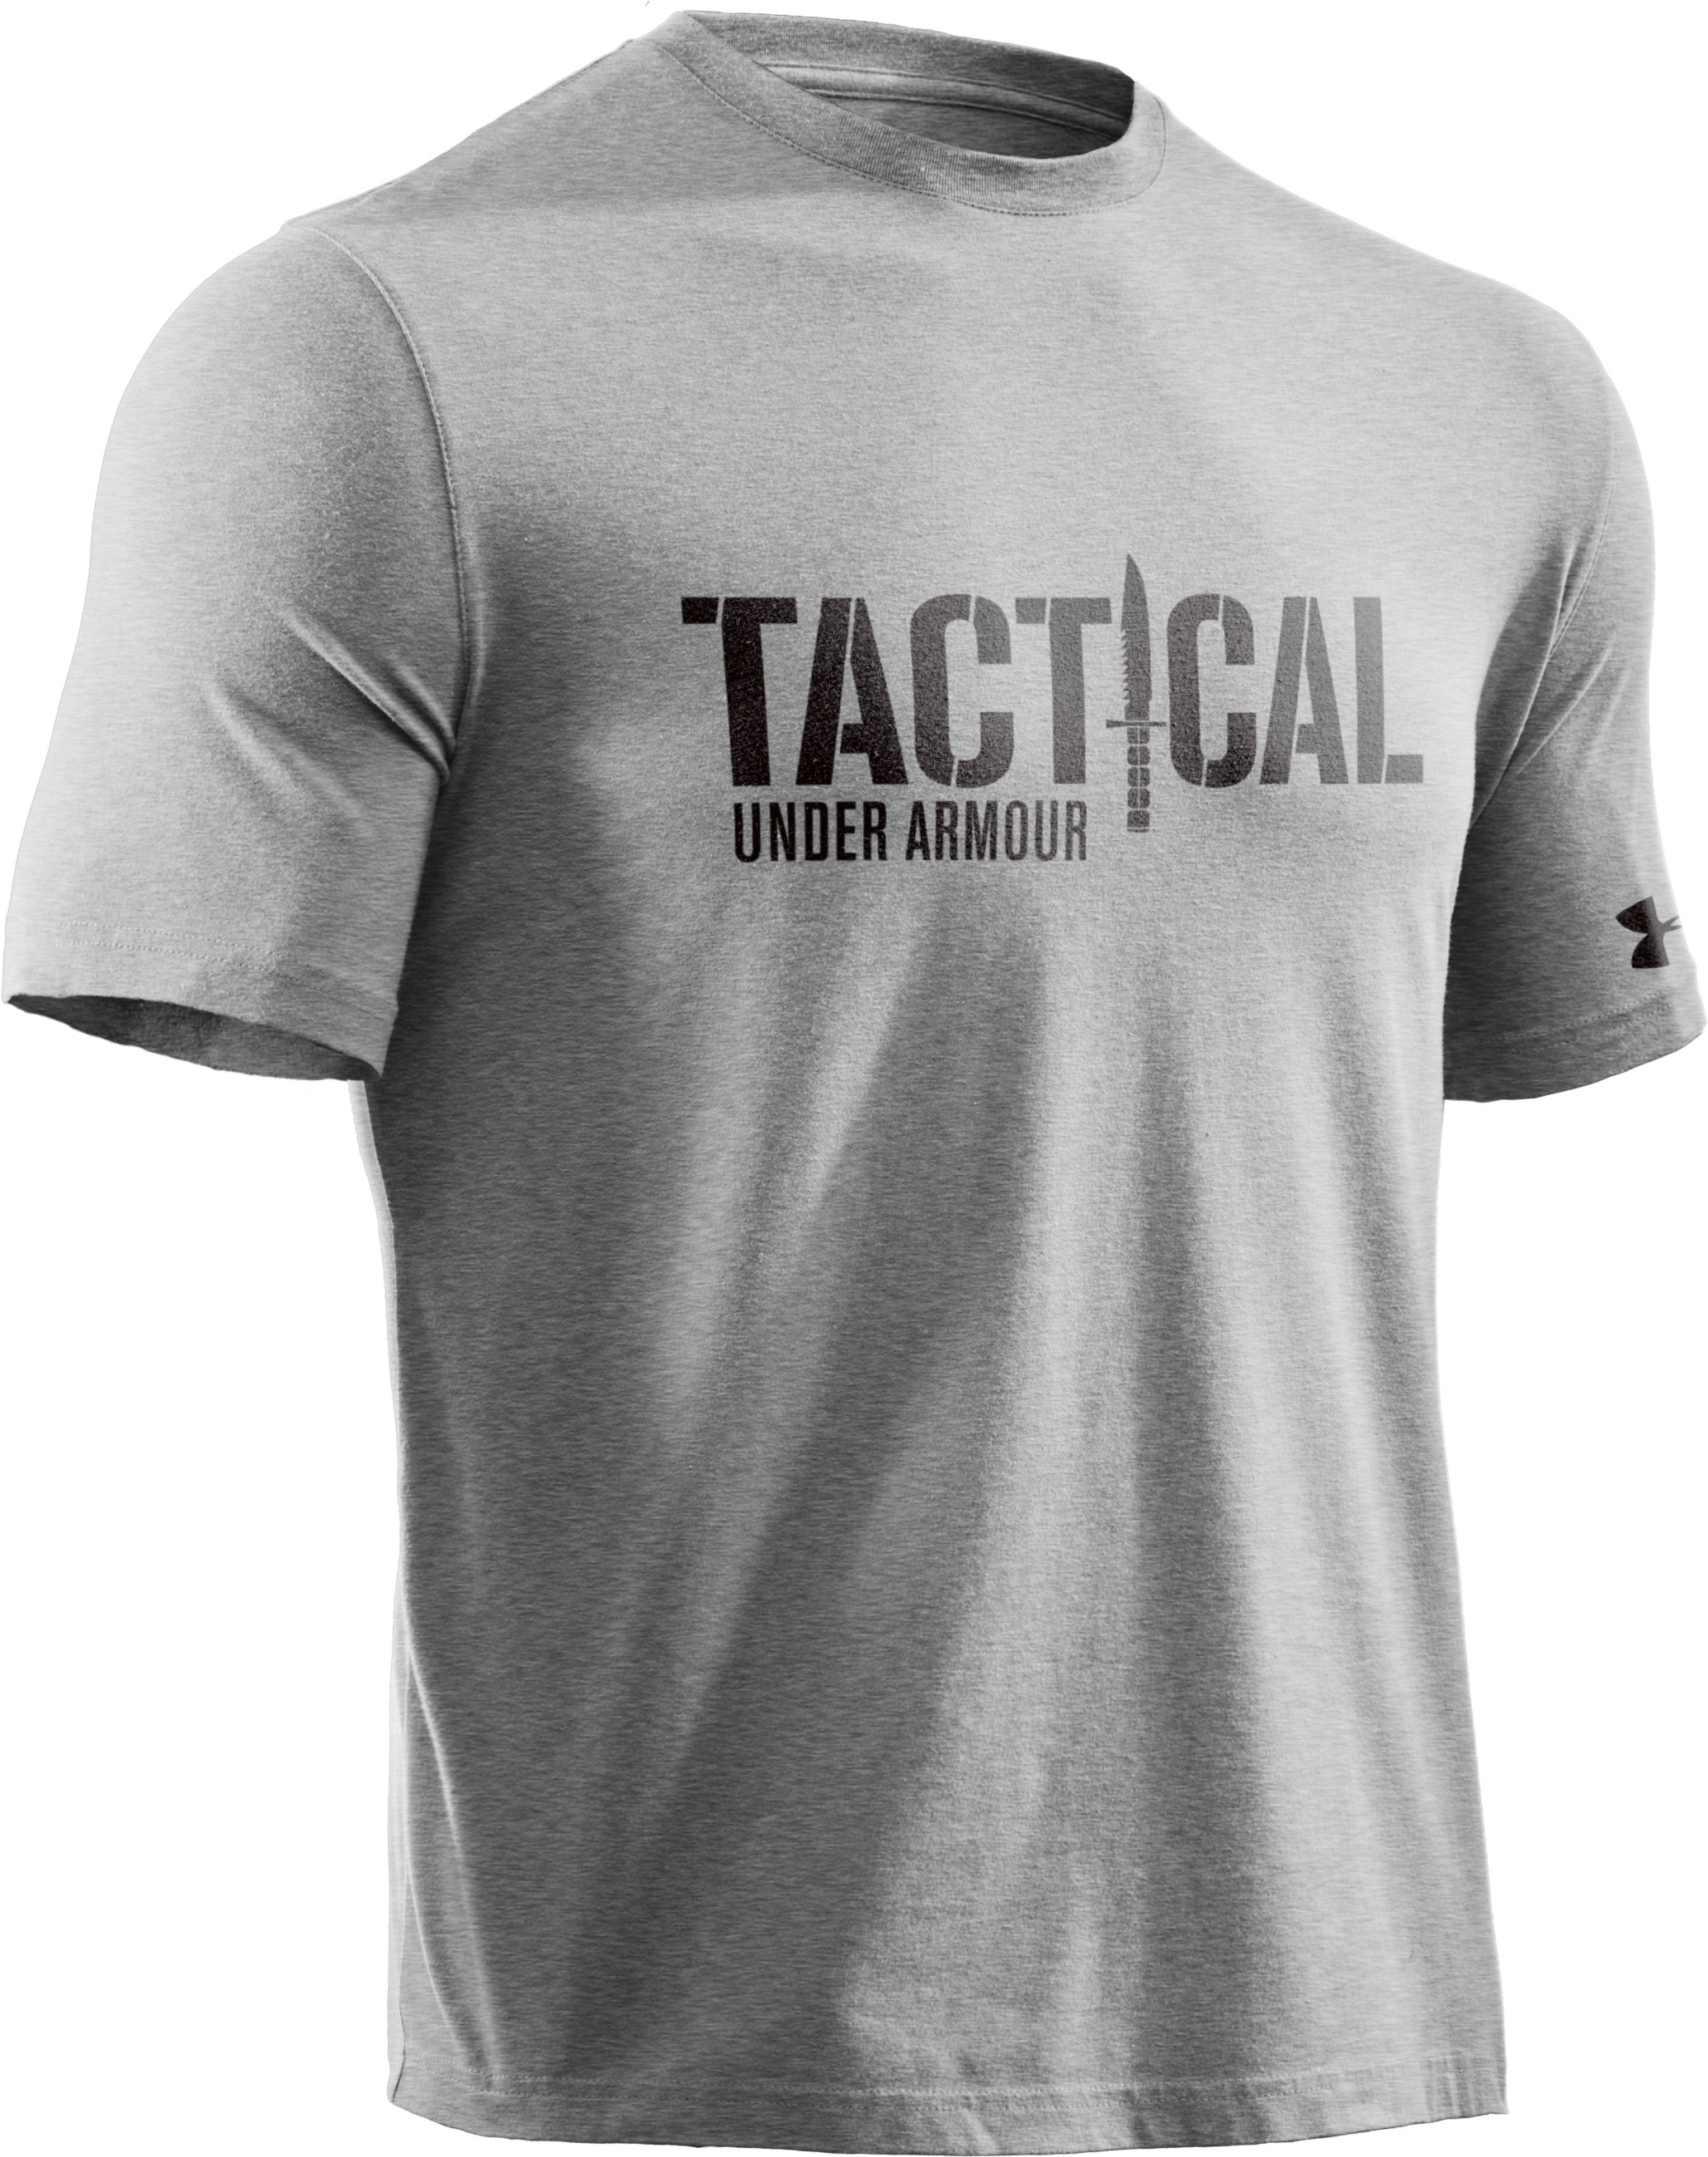 Men's Knife Charged Cotton® T-Shirt, True Gray Heather, undefined